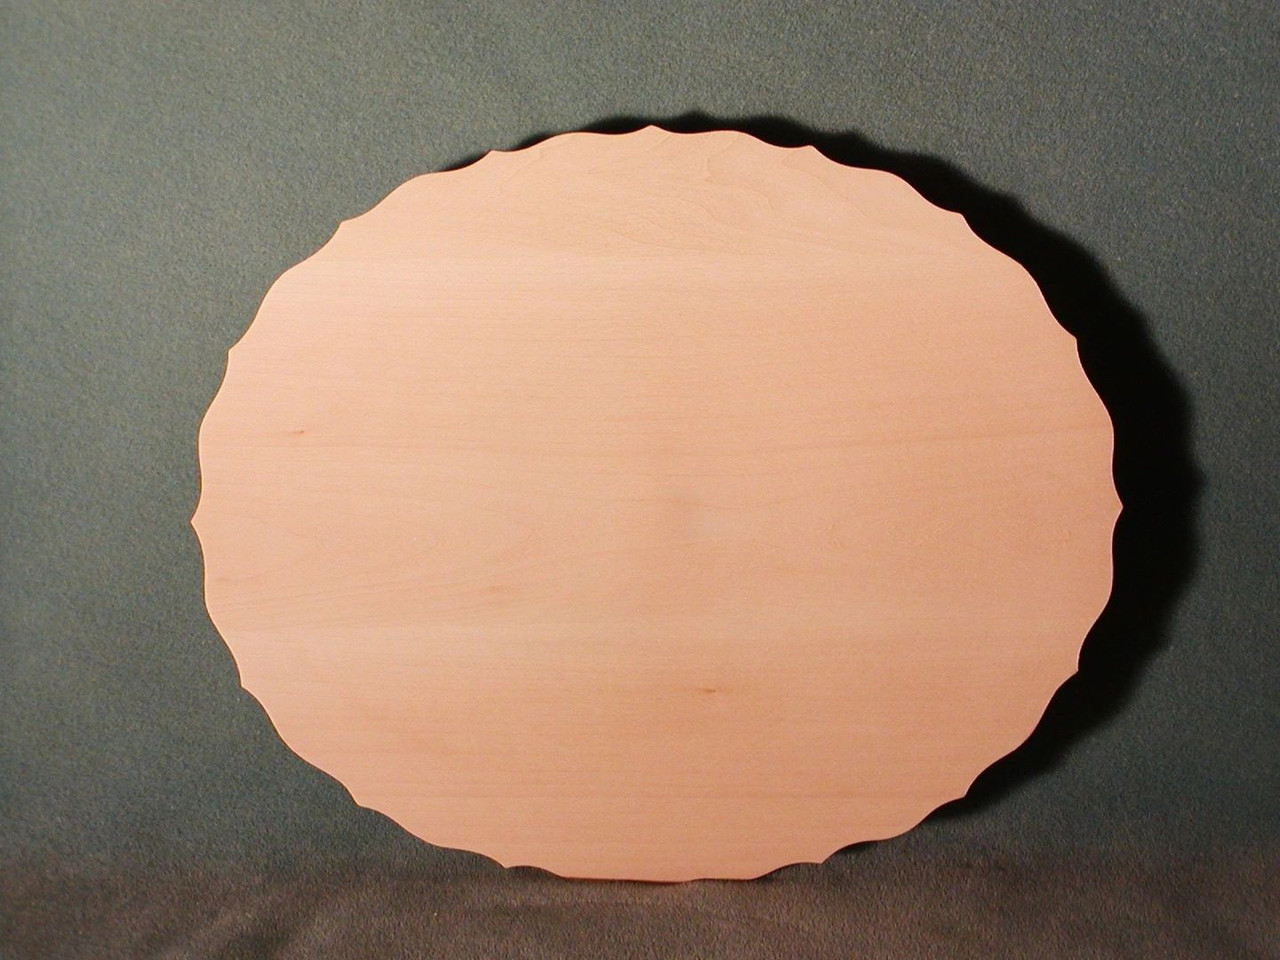 Basswood scalloped oval plate showing the face with the scalloped edges and flat face.